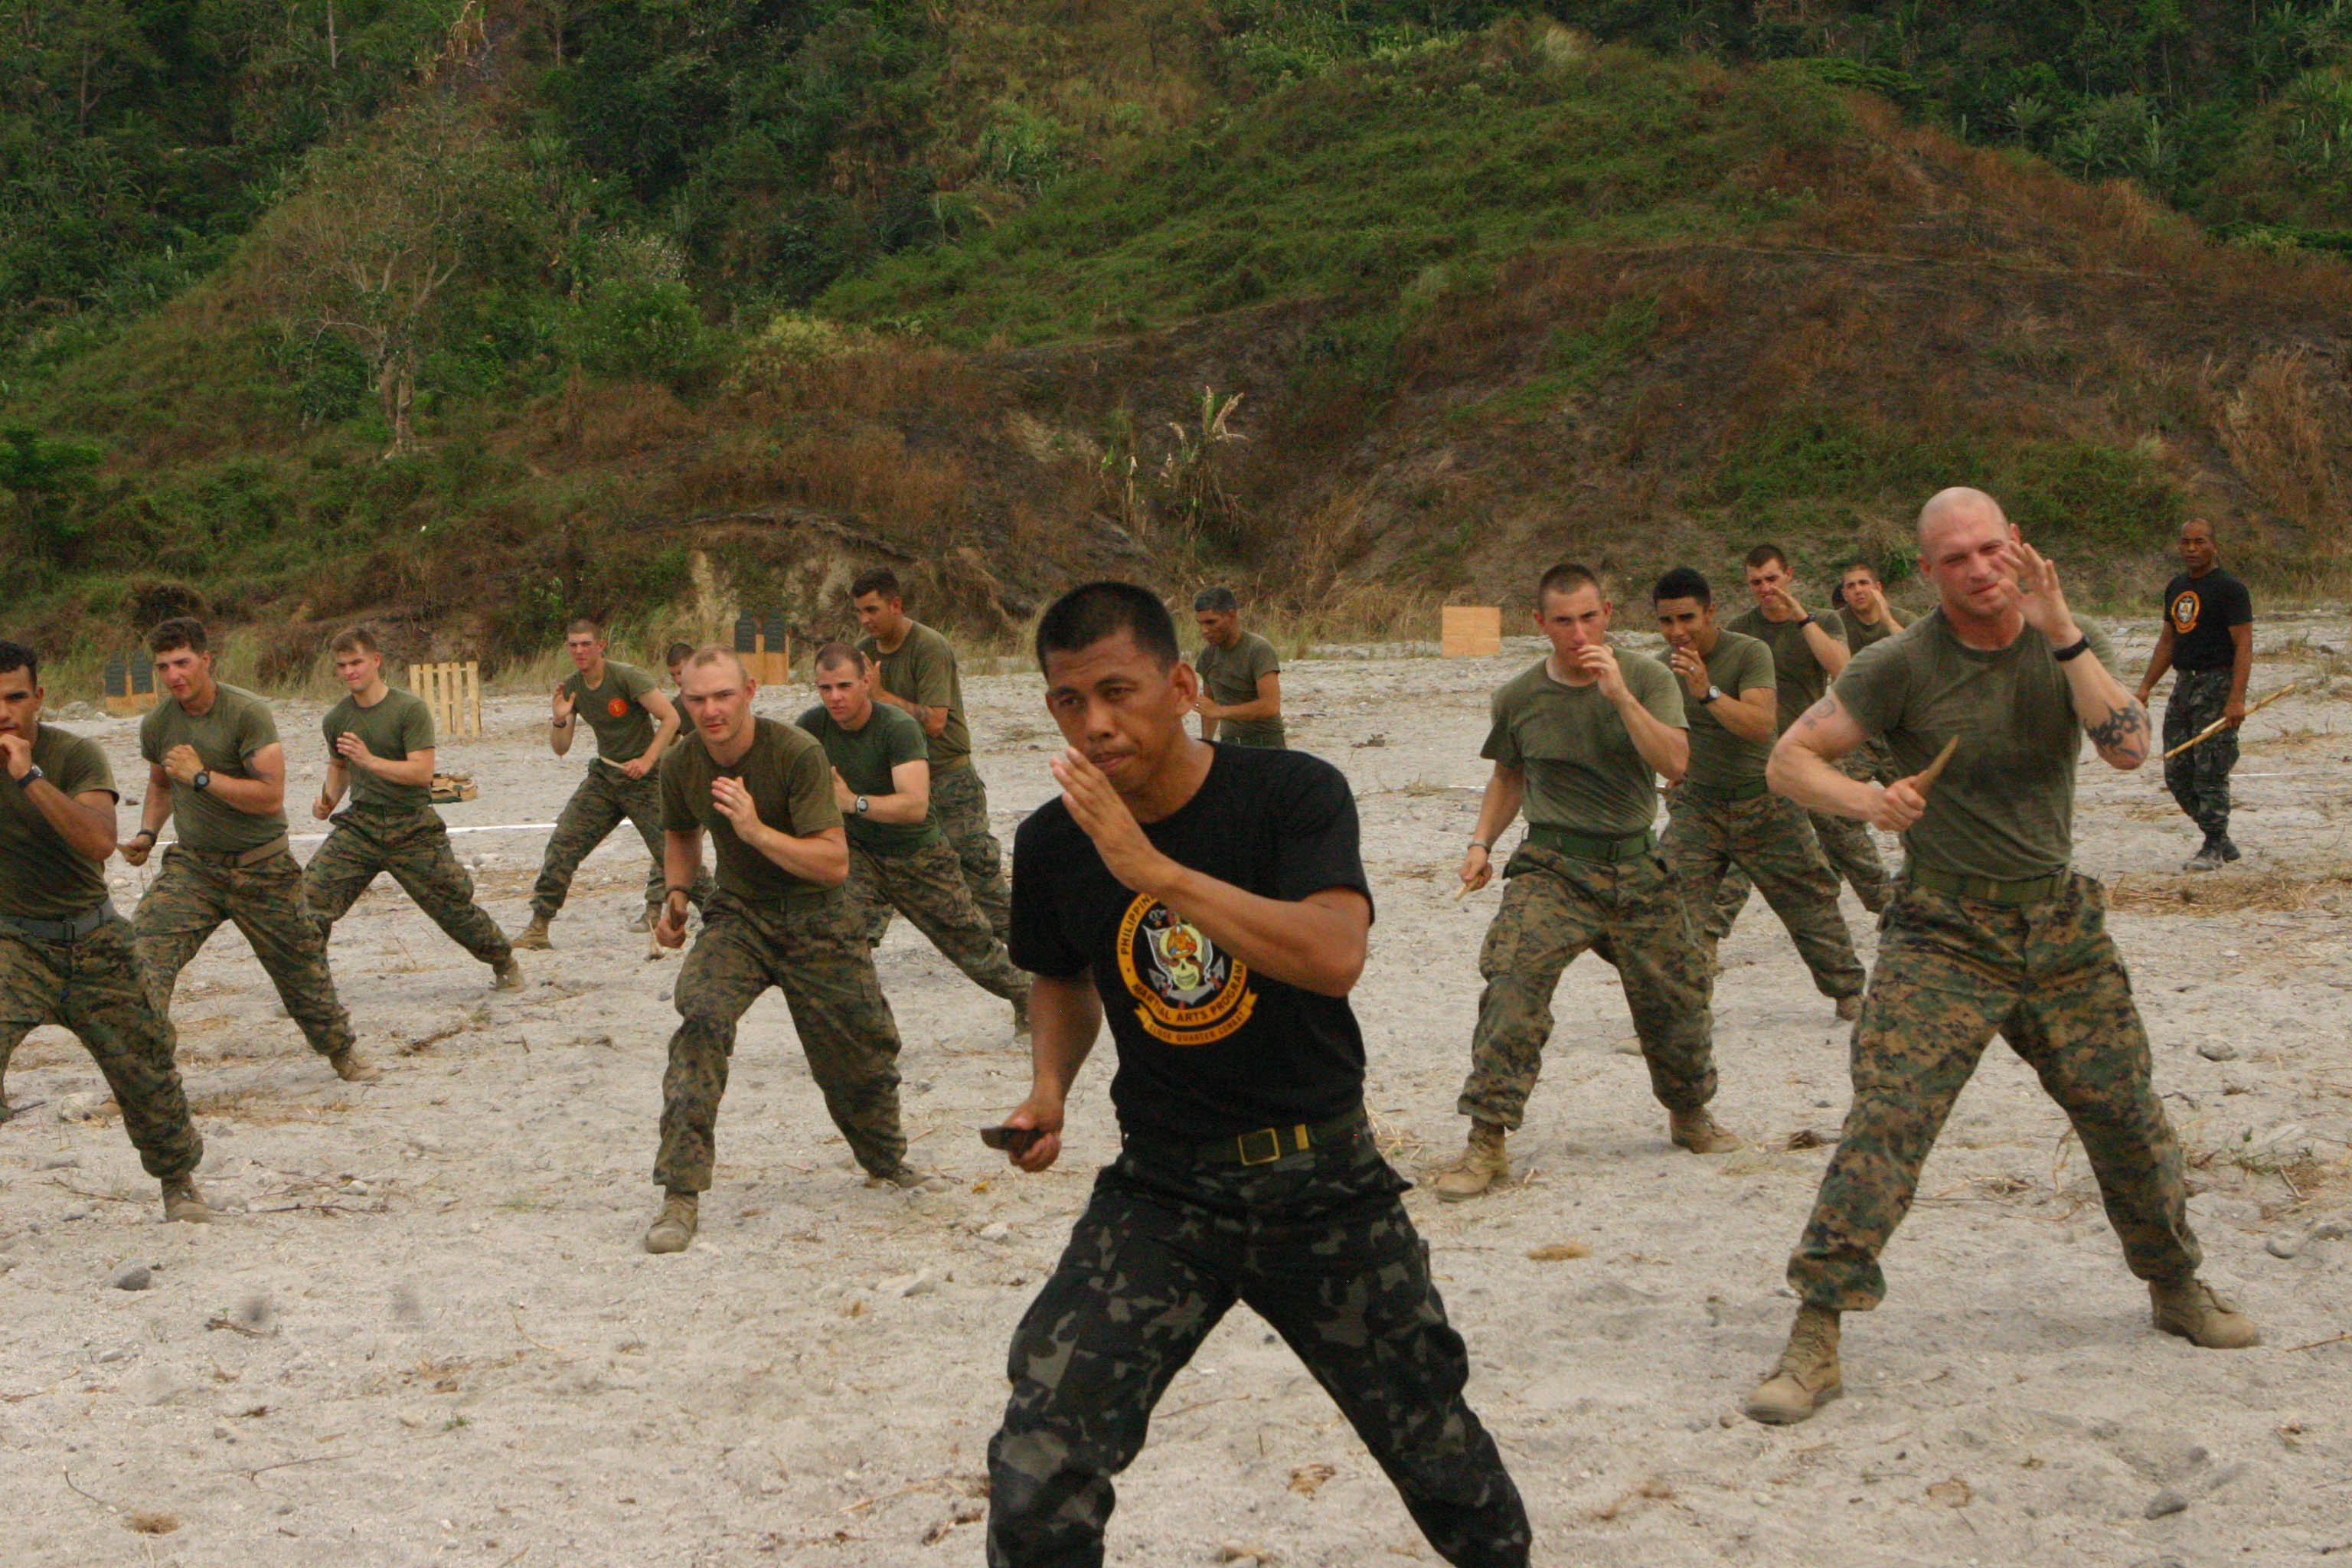 File:PMC Martial Arts.JPG - Wikimedia Commons